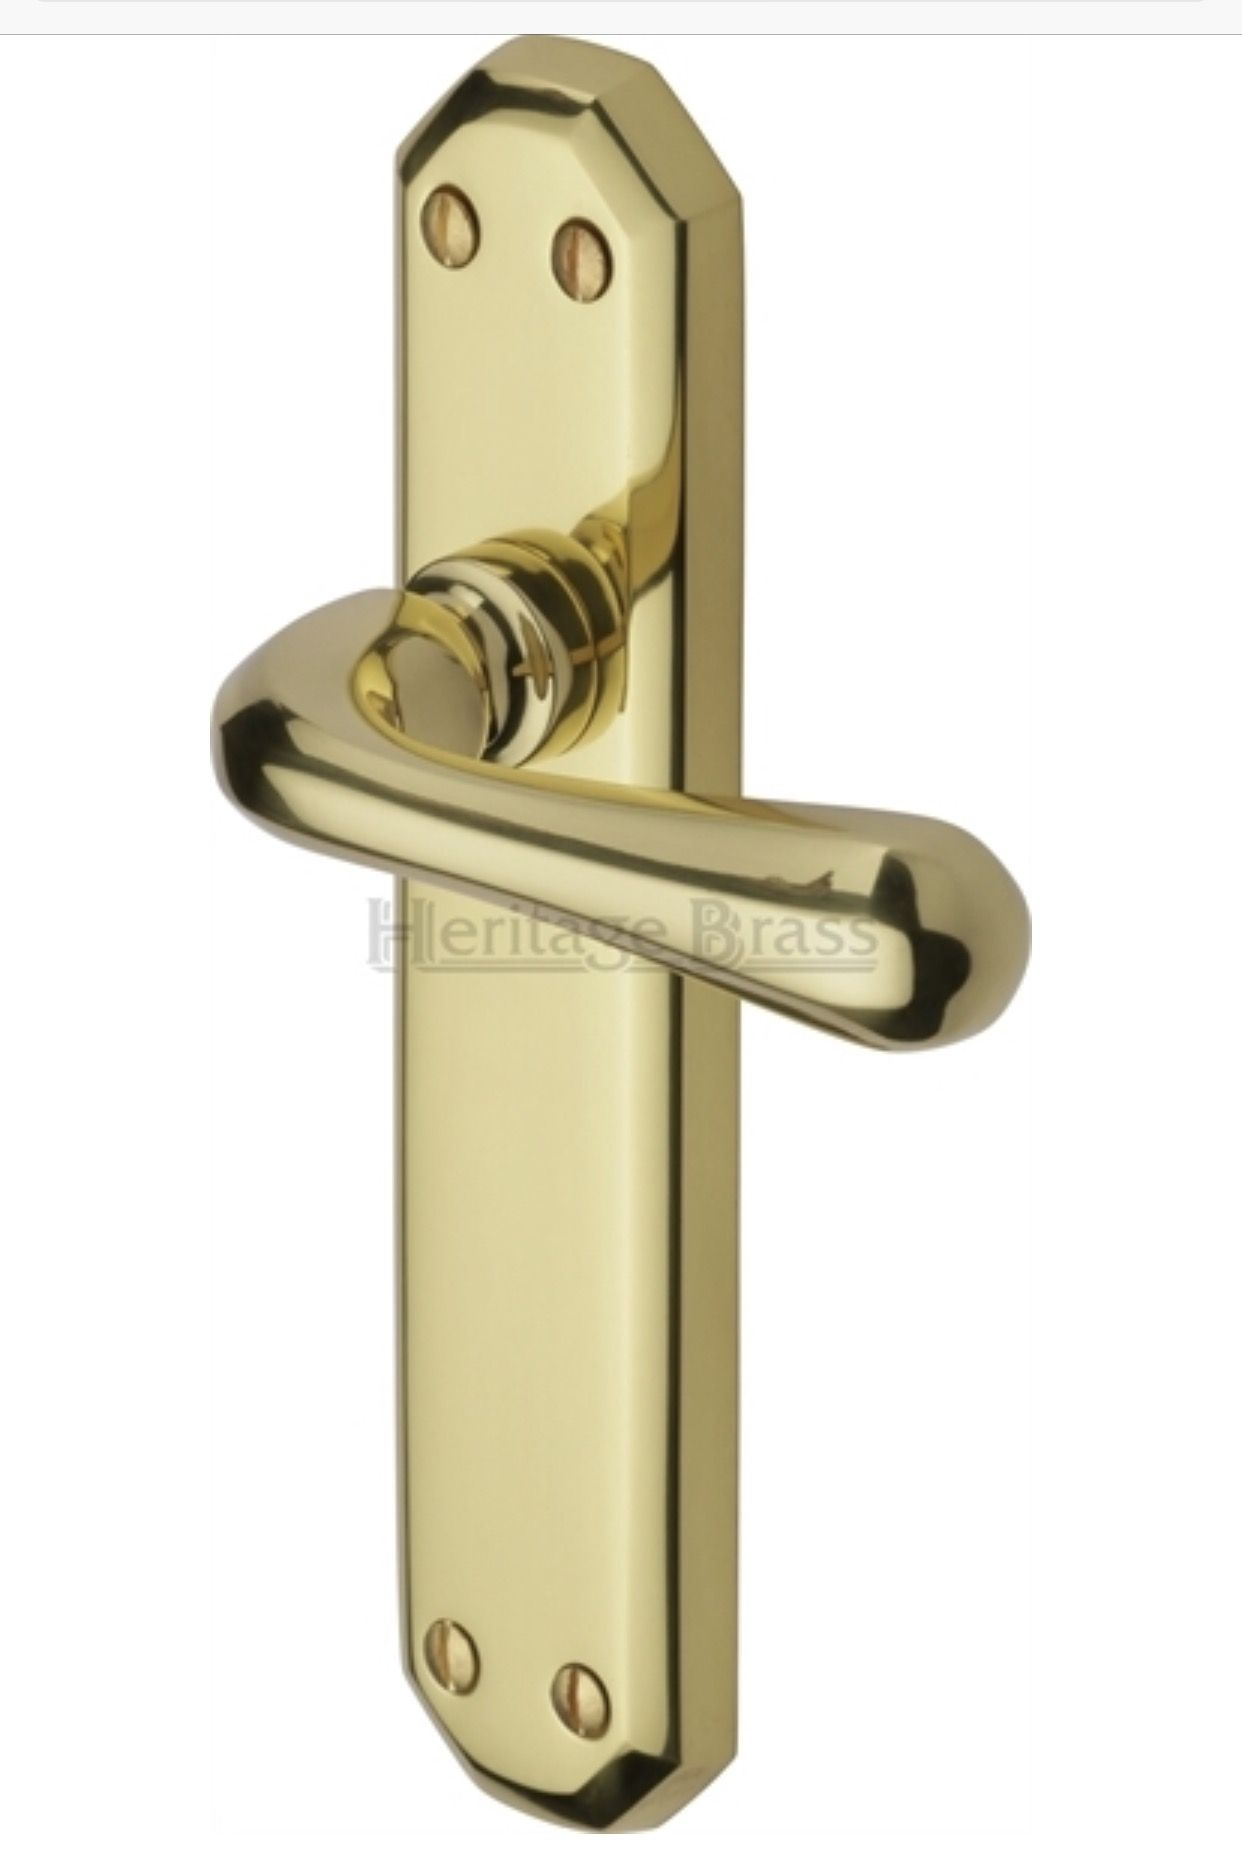 Charlbury Door Handles On Backplate Dimensions 184mm X 41mm Supplied In Pairs With Spindle S Finishes Available Polished Br